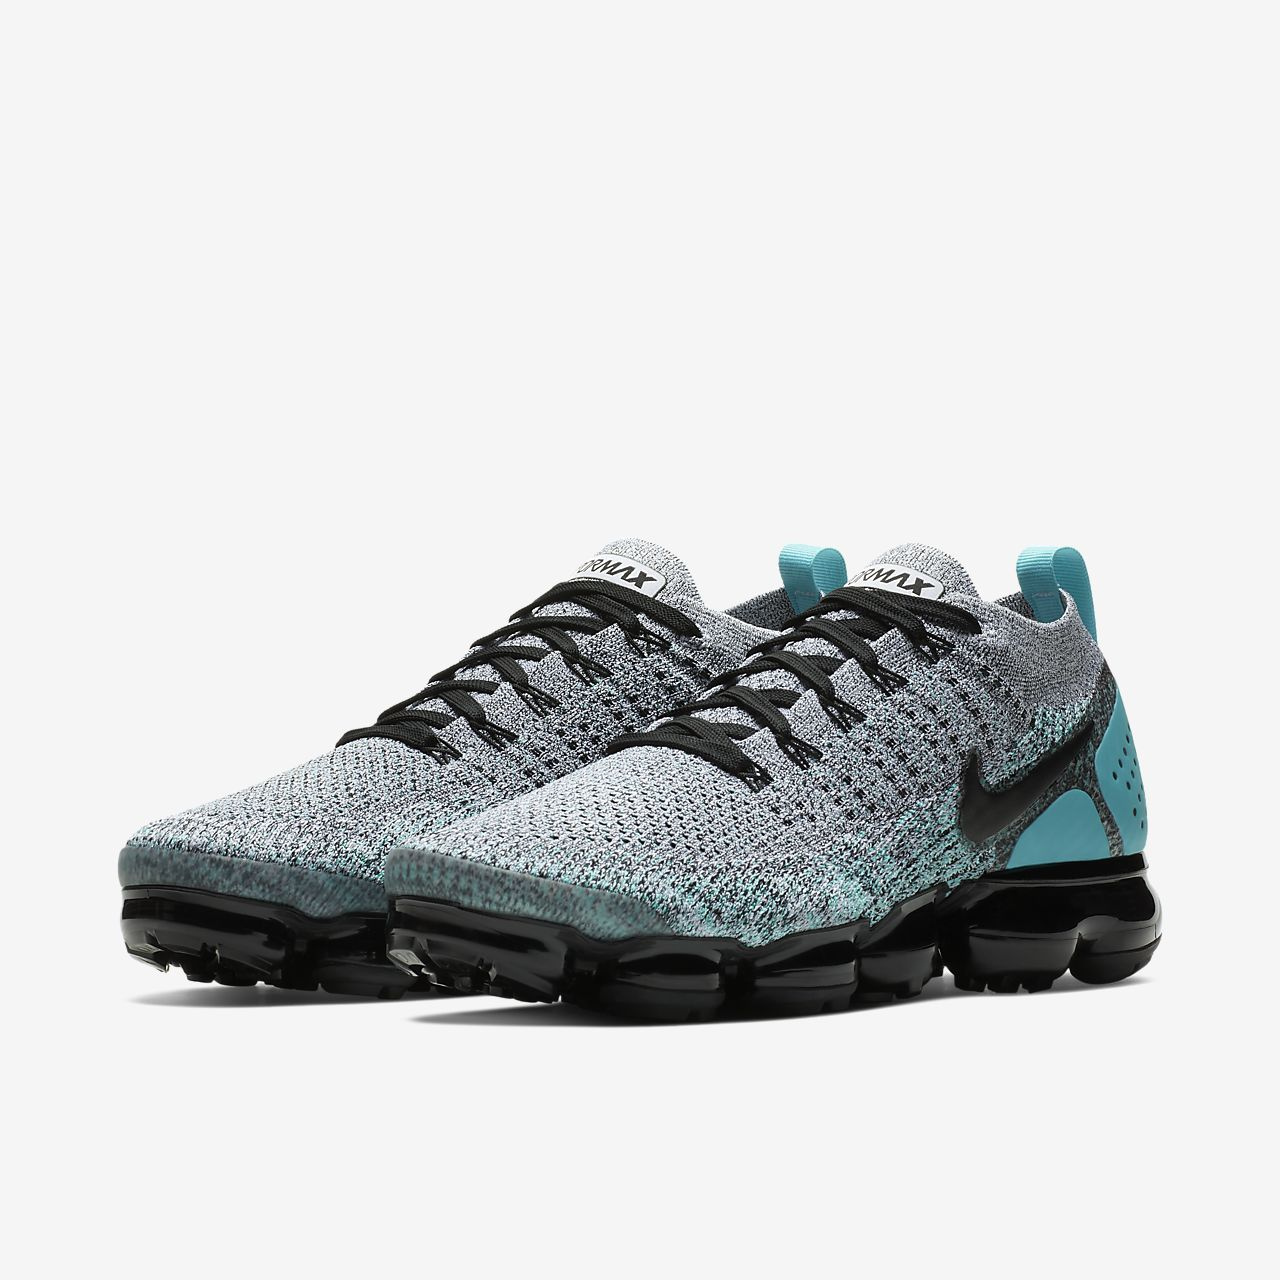 Nike Air Vapormax Flyknit   Buy Nike Shoes   Sneakers ... 63fc4d39c